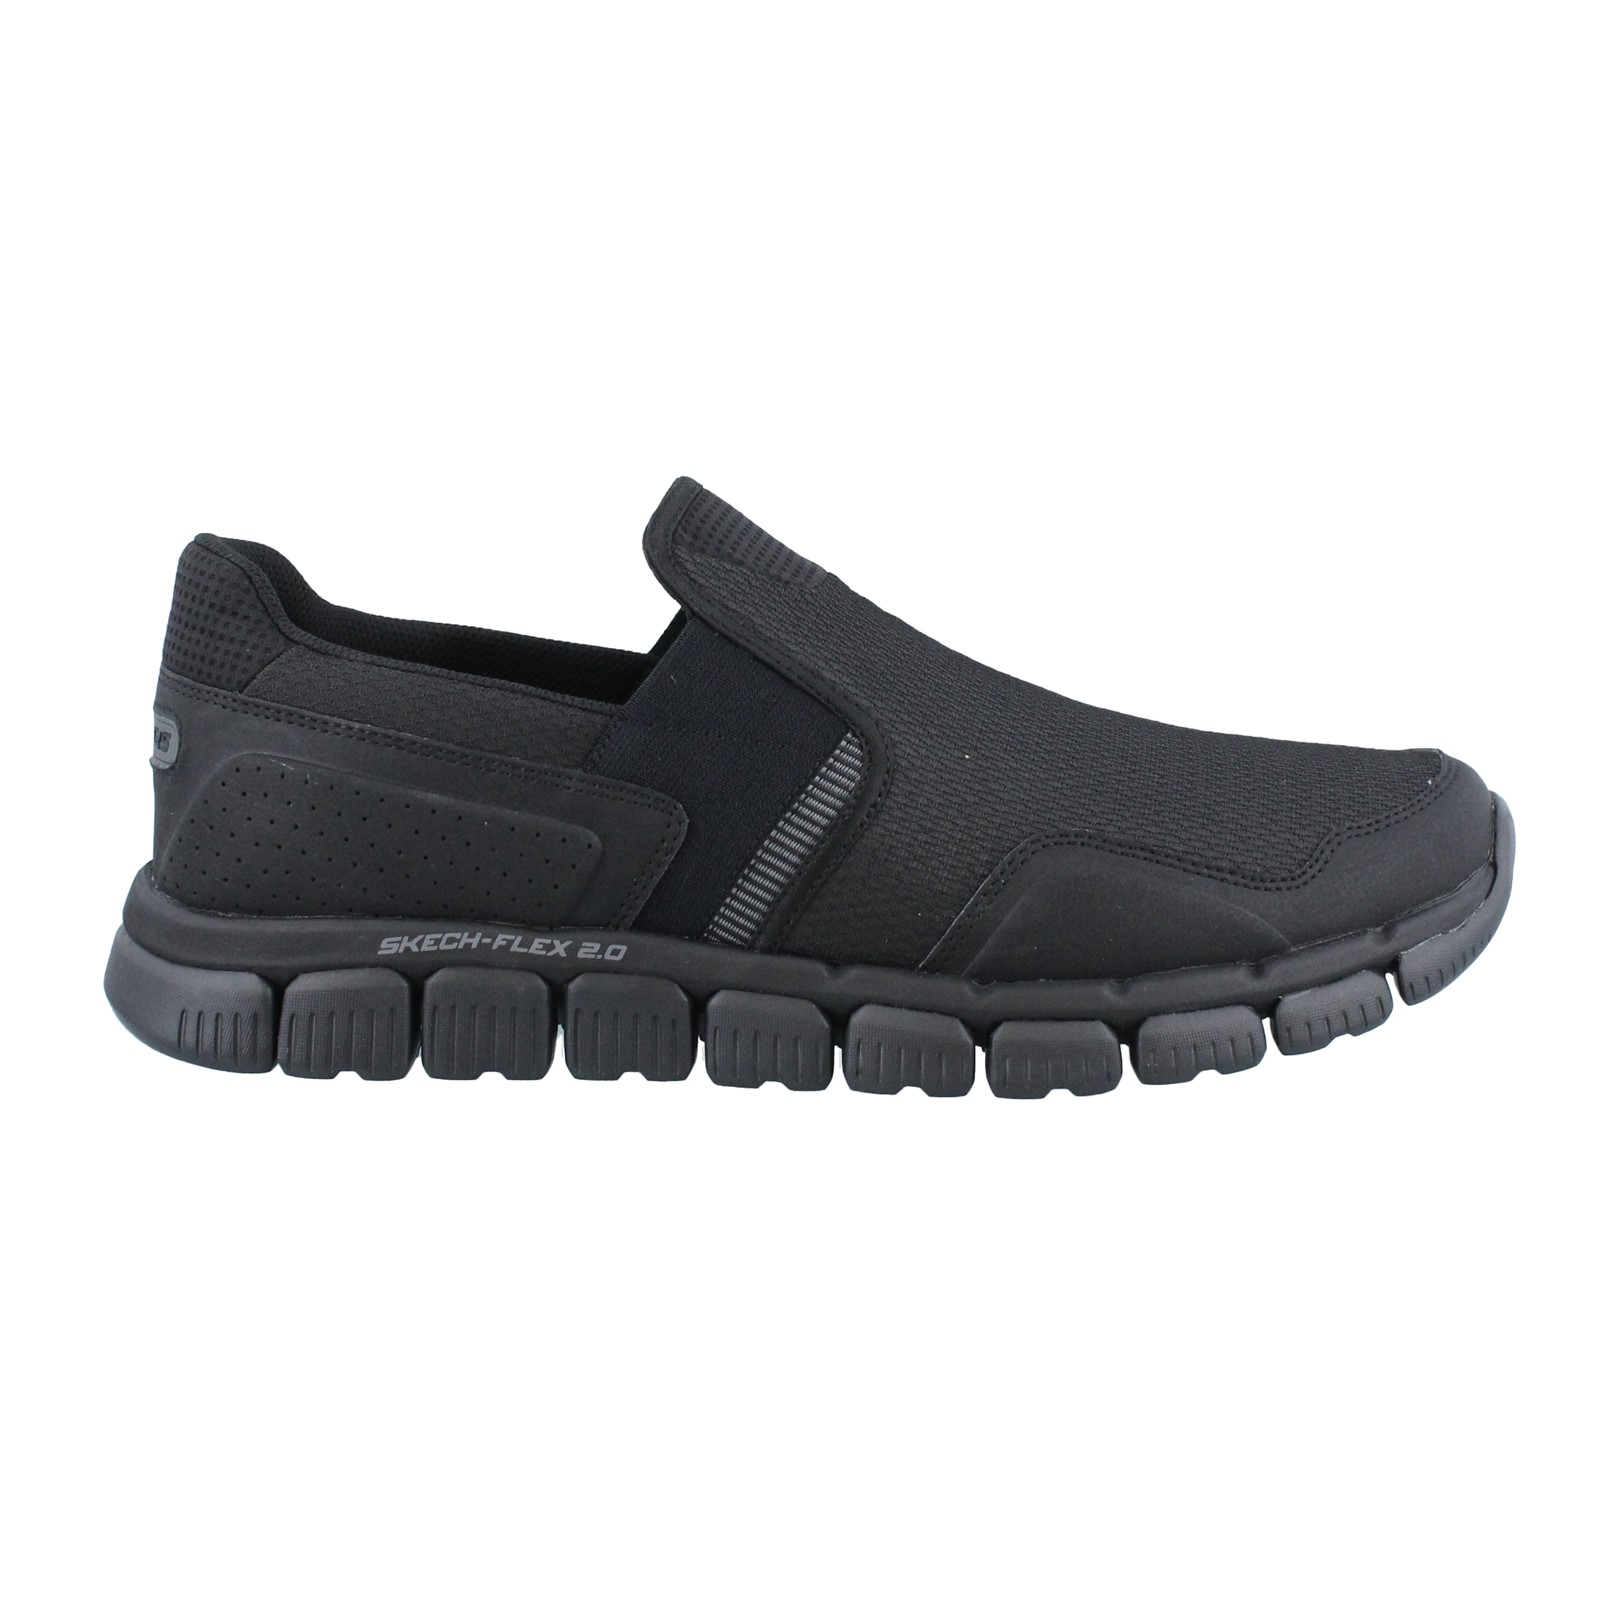 Skechers Relaxed Fit Skech Flex 2.0 Wentland Mens Slip On